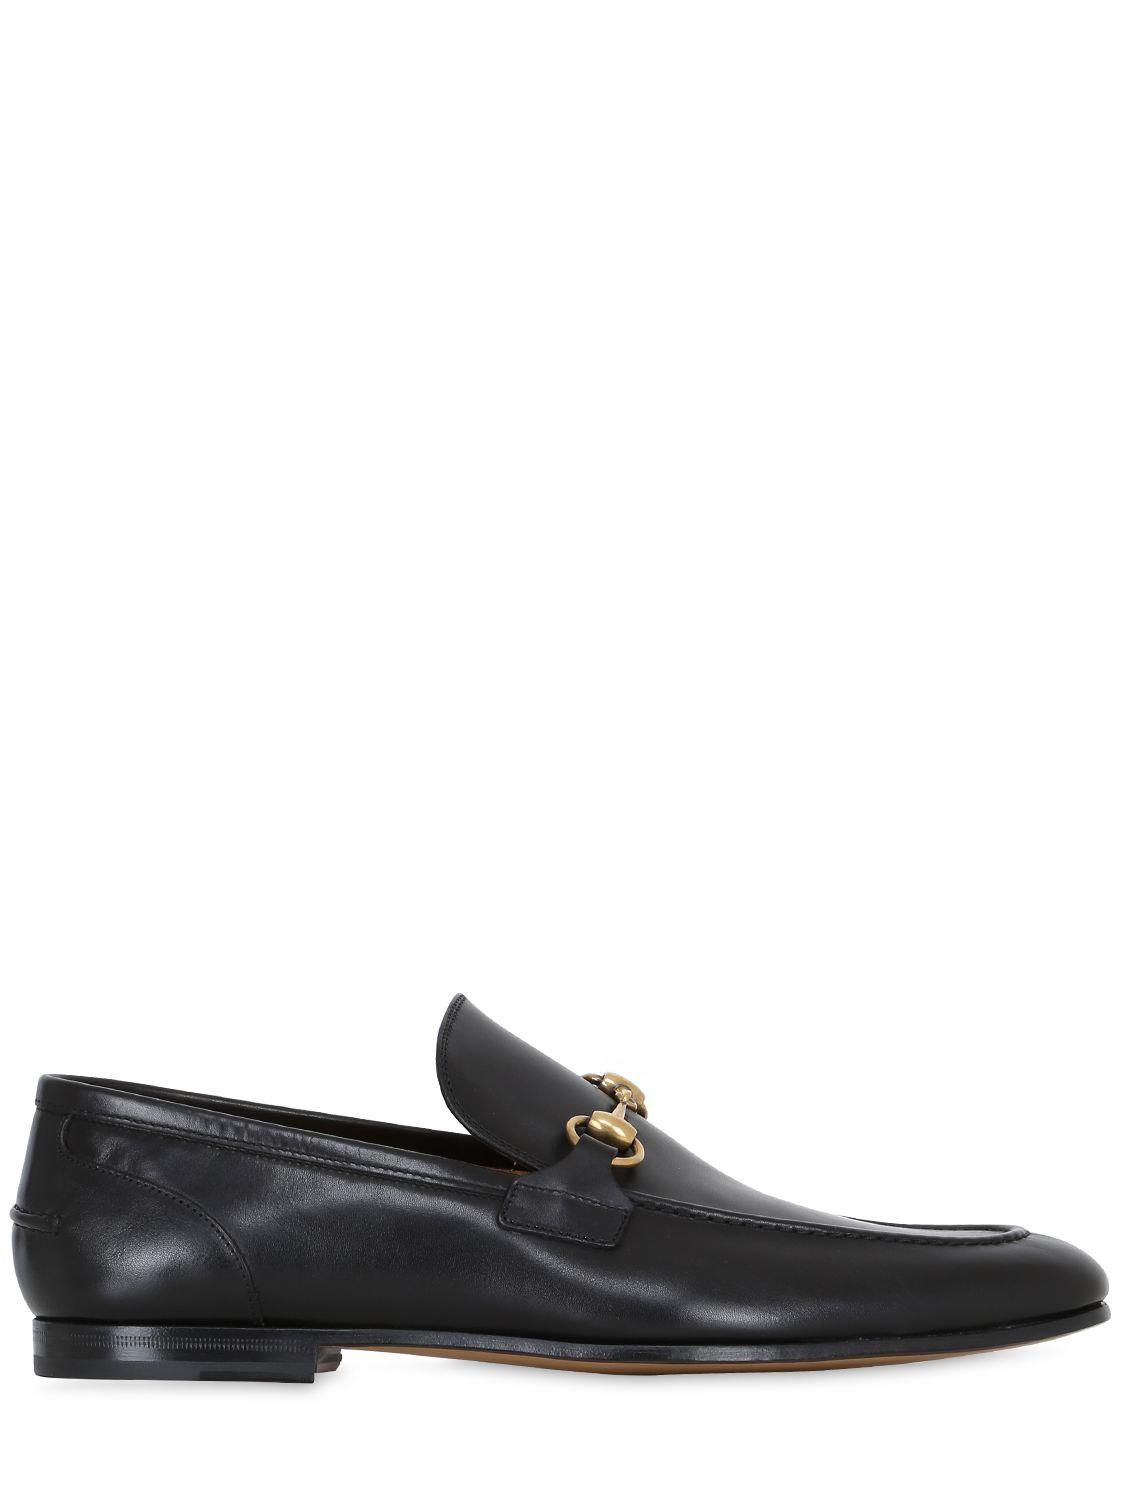 b64aad75c Gucci Jordaan Horsebit Leather Loafers in Black for Men - Lyst